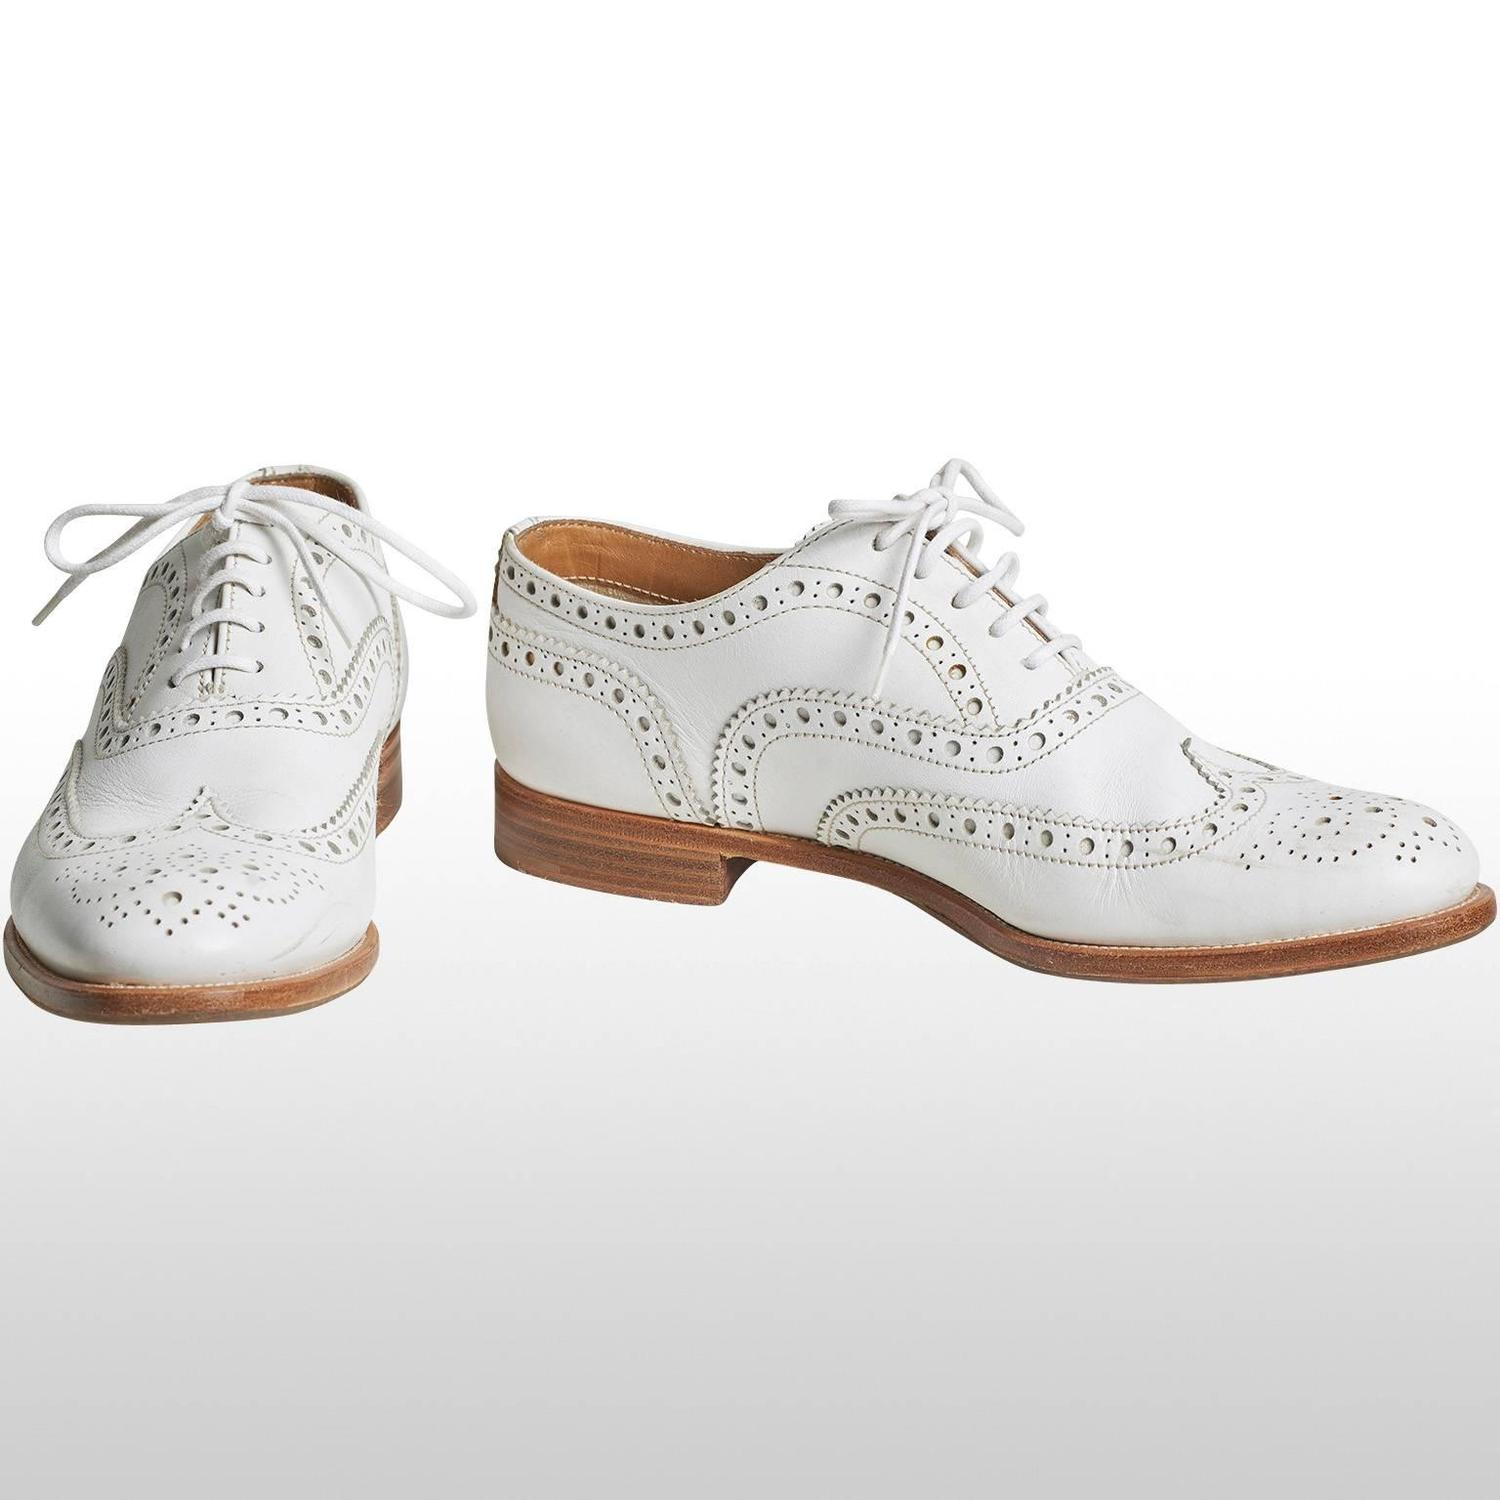 The Brogue (derived from the Gaelic bróg (Irish), bròg (Scottish)